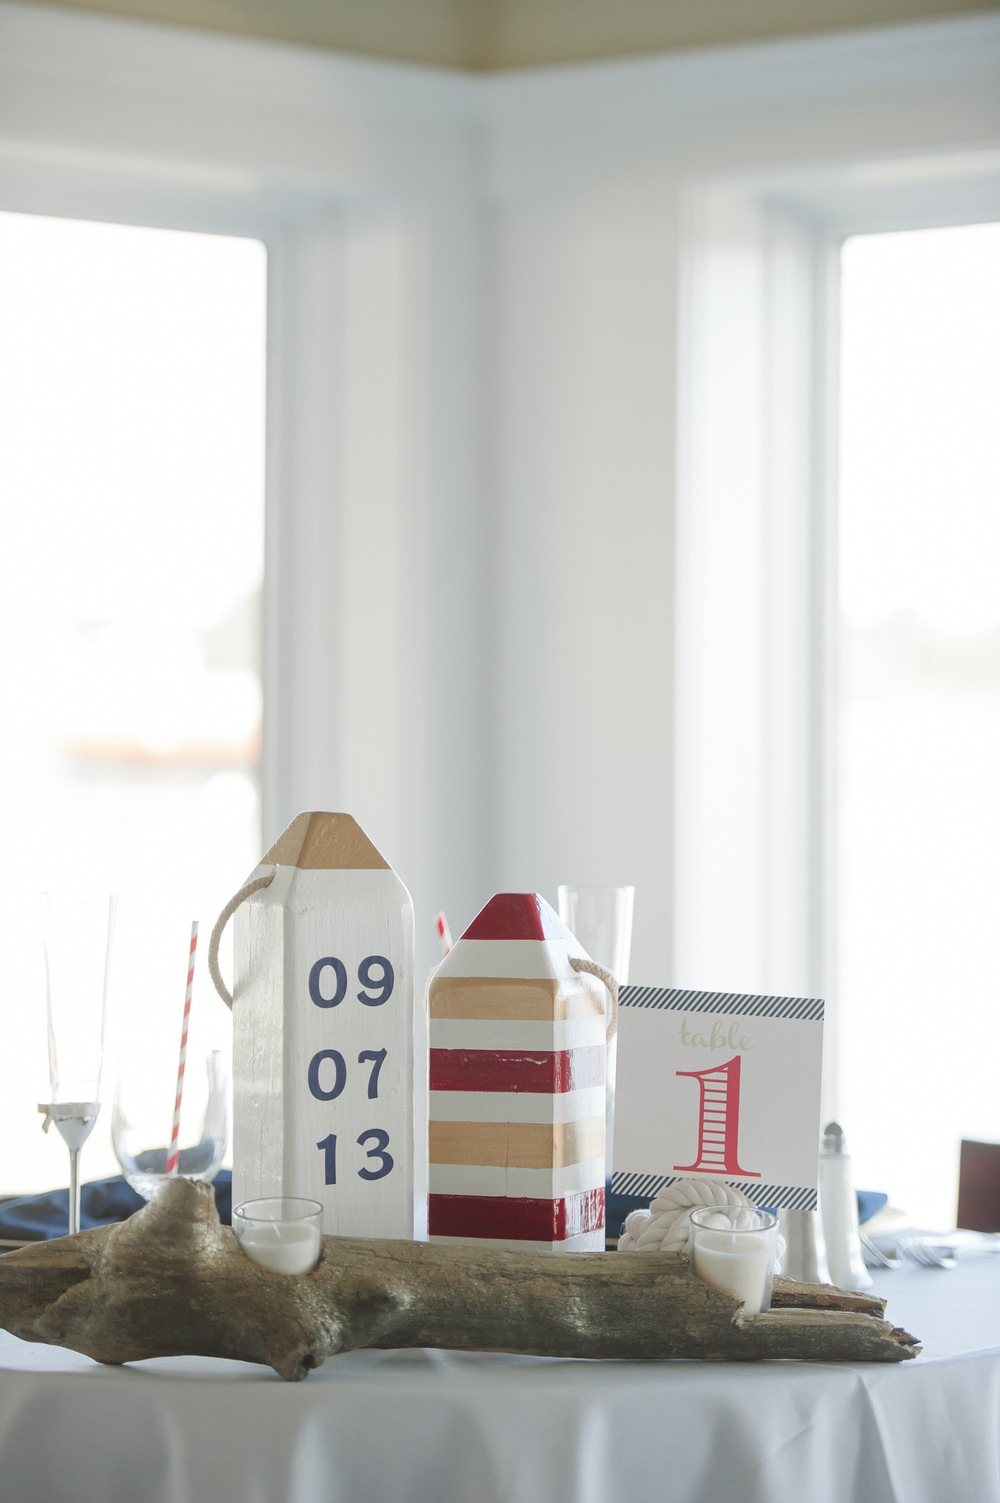 Jcrew Kate Spade Nautical Glam inspired Wedding23.jpg